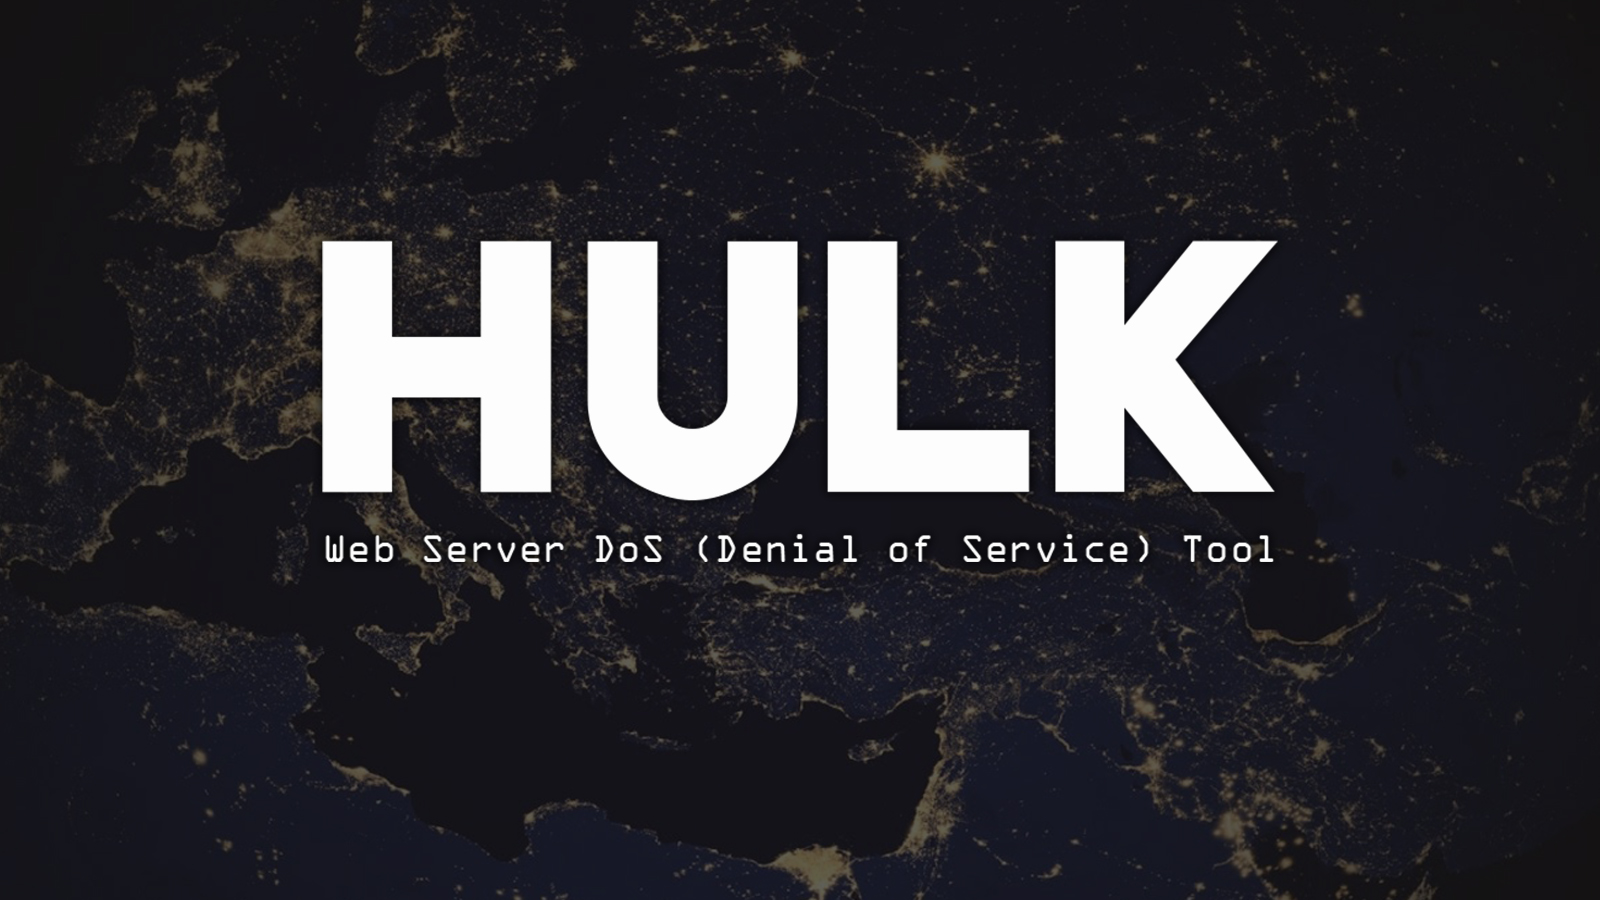 HULK - Web Server DoS (Denial of Service) Tool